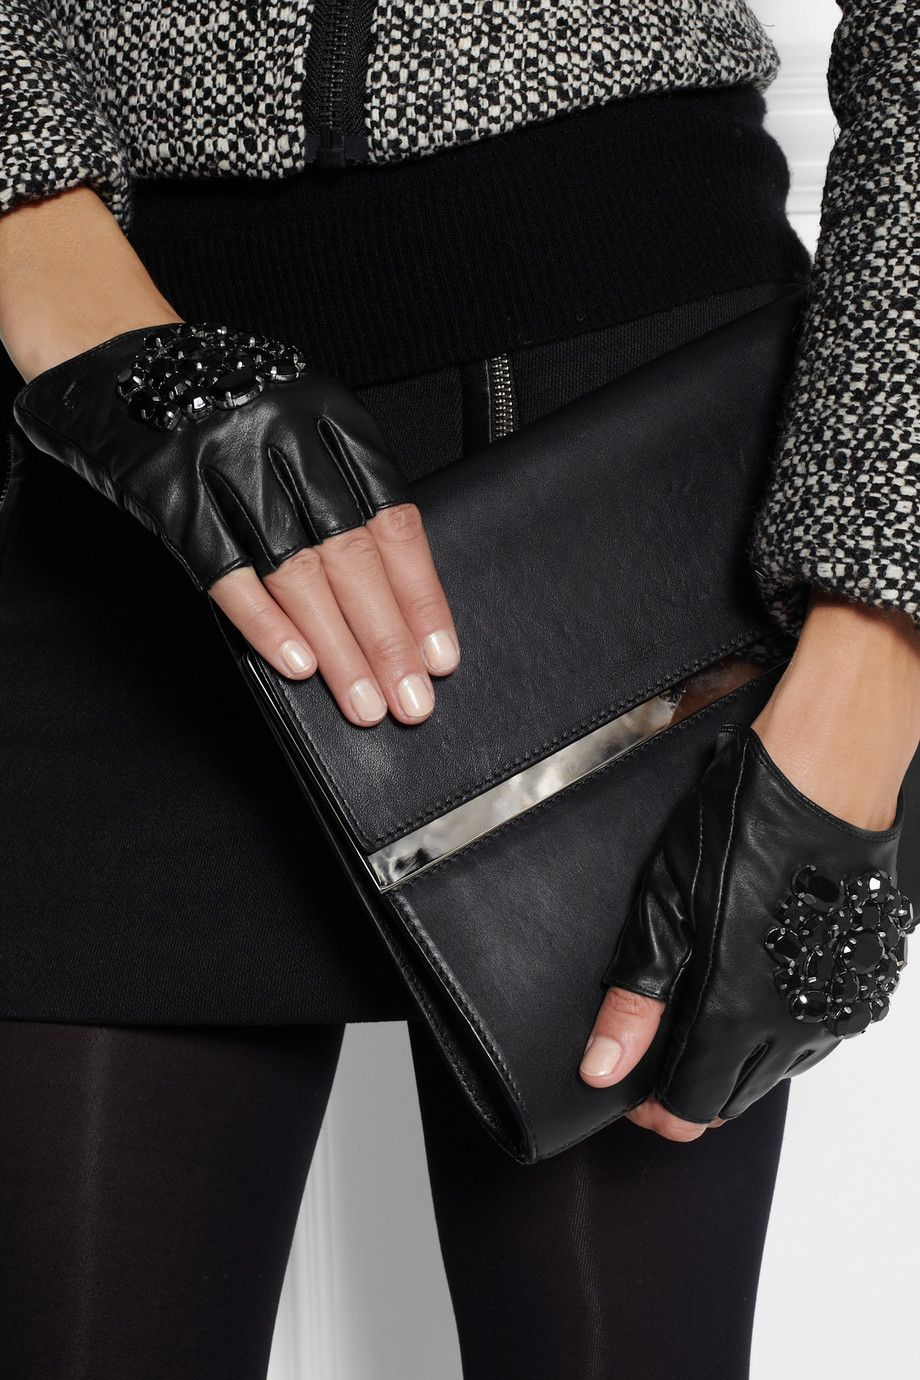 Black leather gloves female - Karl Lagerfeld Attens Crystal Embellished Leather Fingerless Gloves